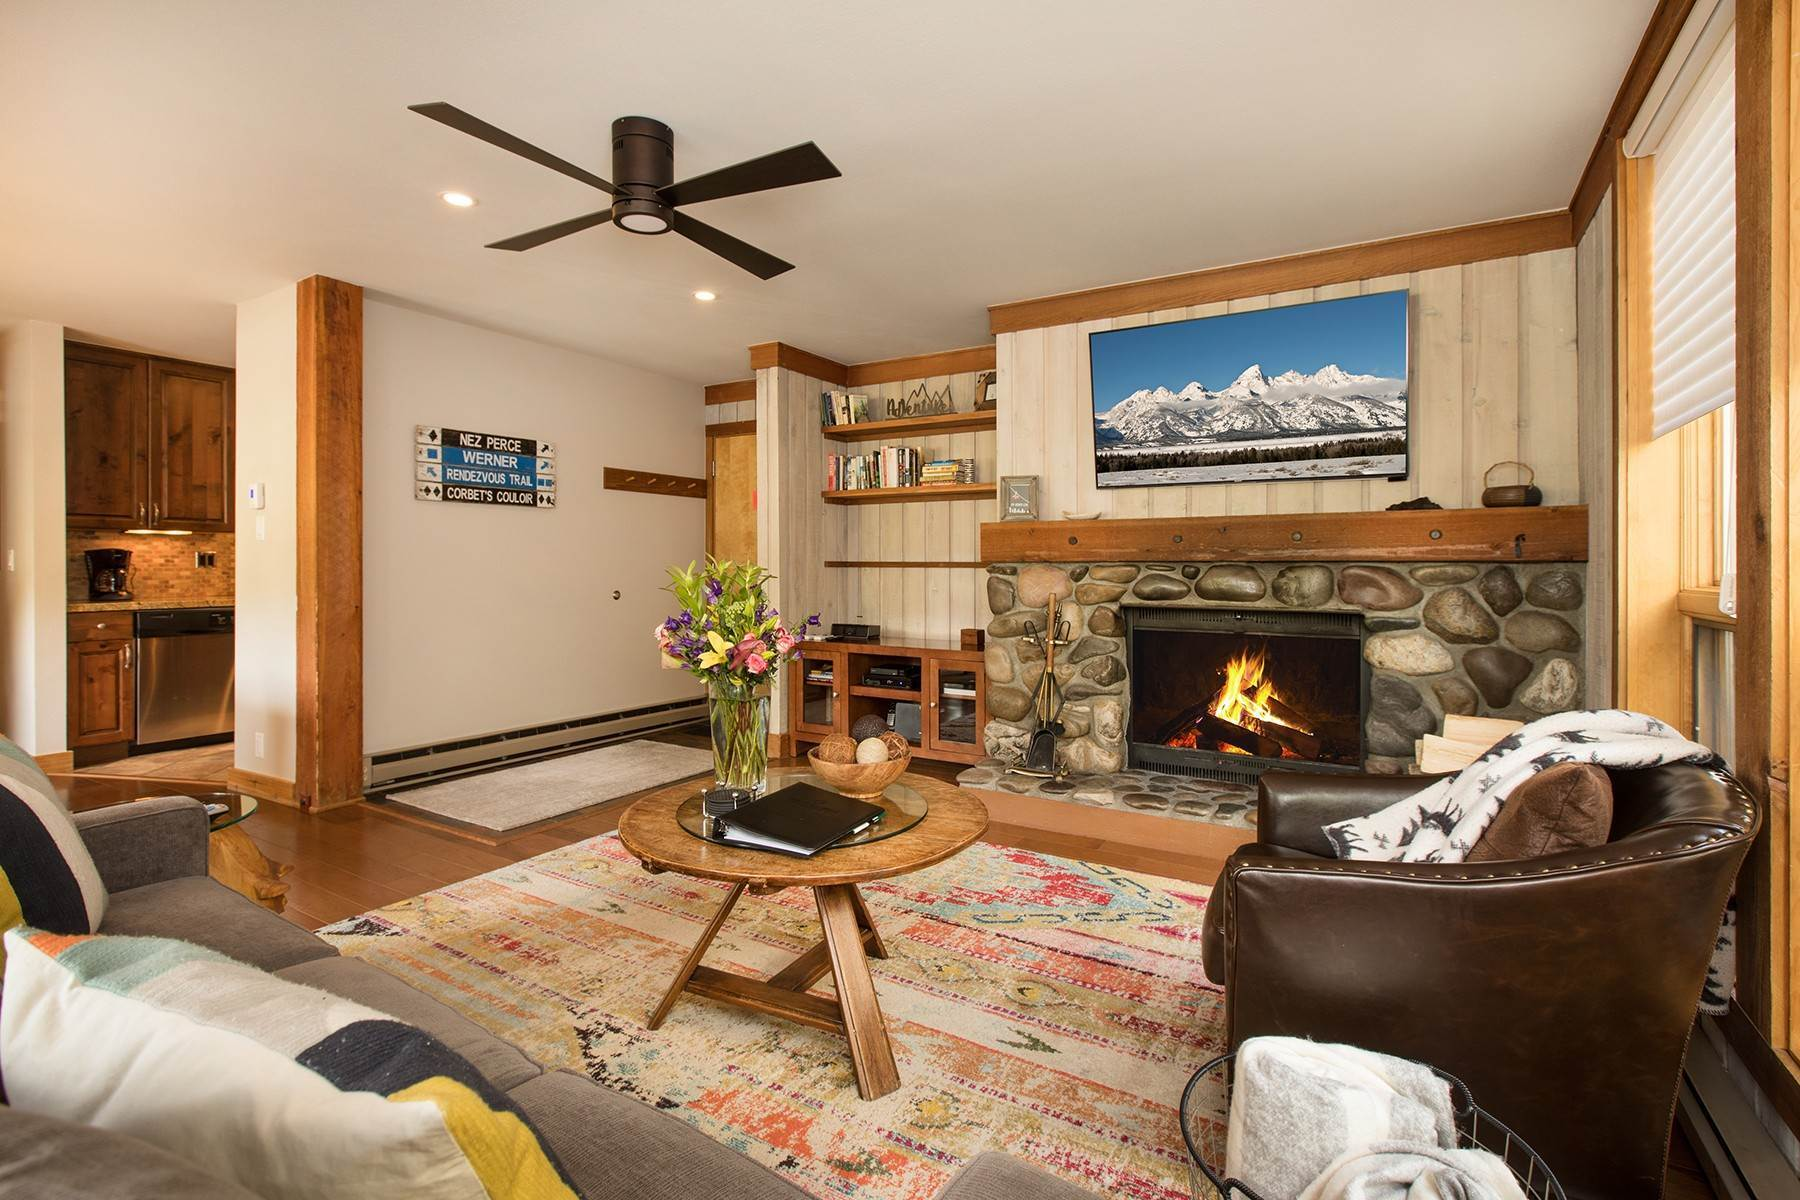 Condominiums for Sale at 3600 W Michael Drive, #C-3-2 Teton Village, Wyoming 83025 United States